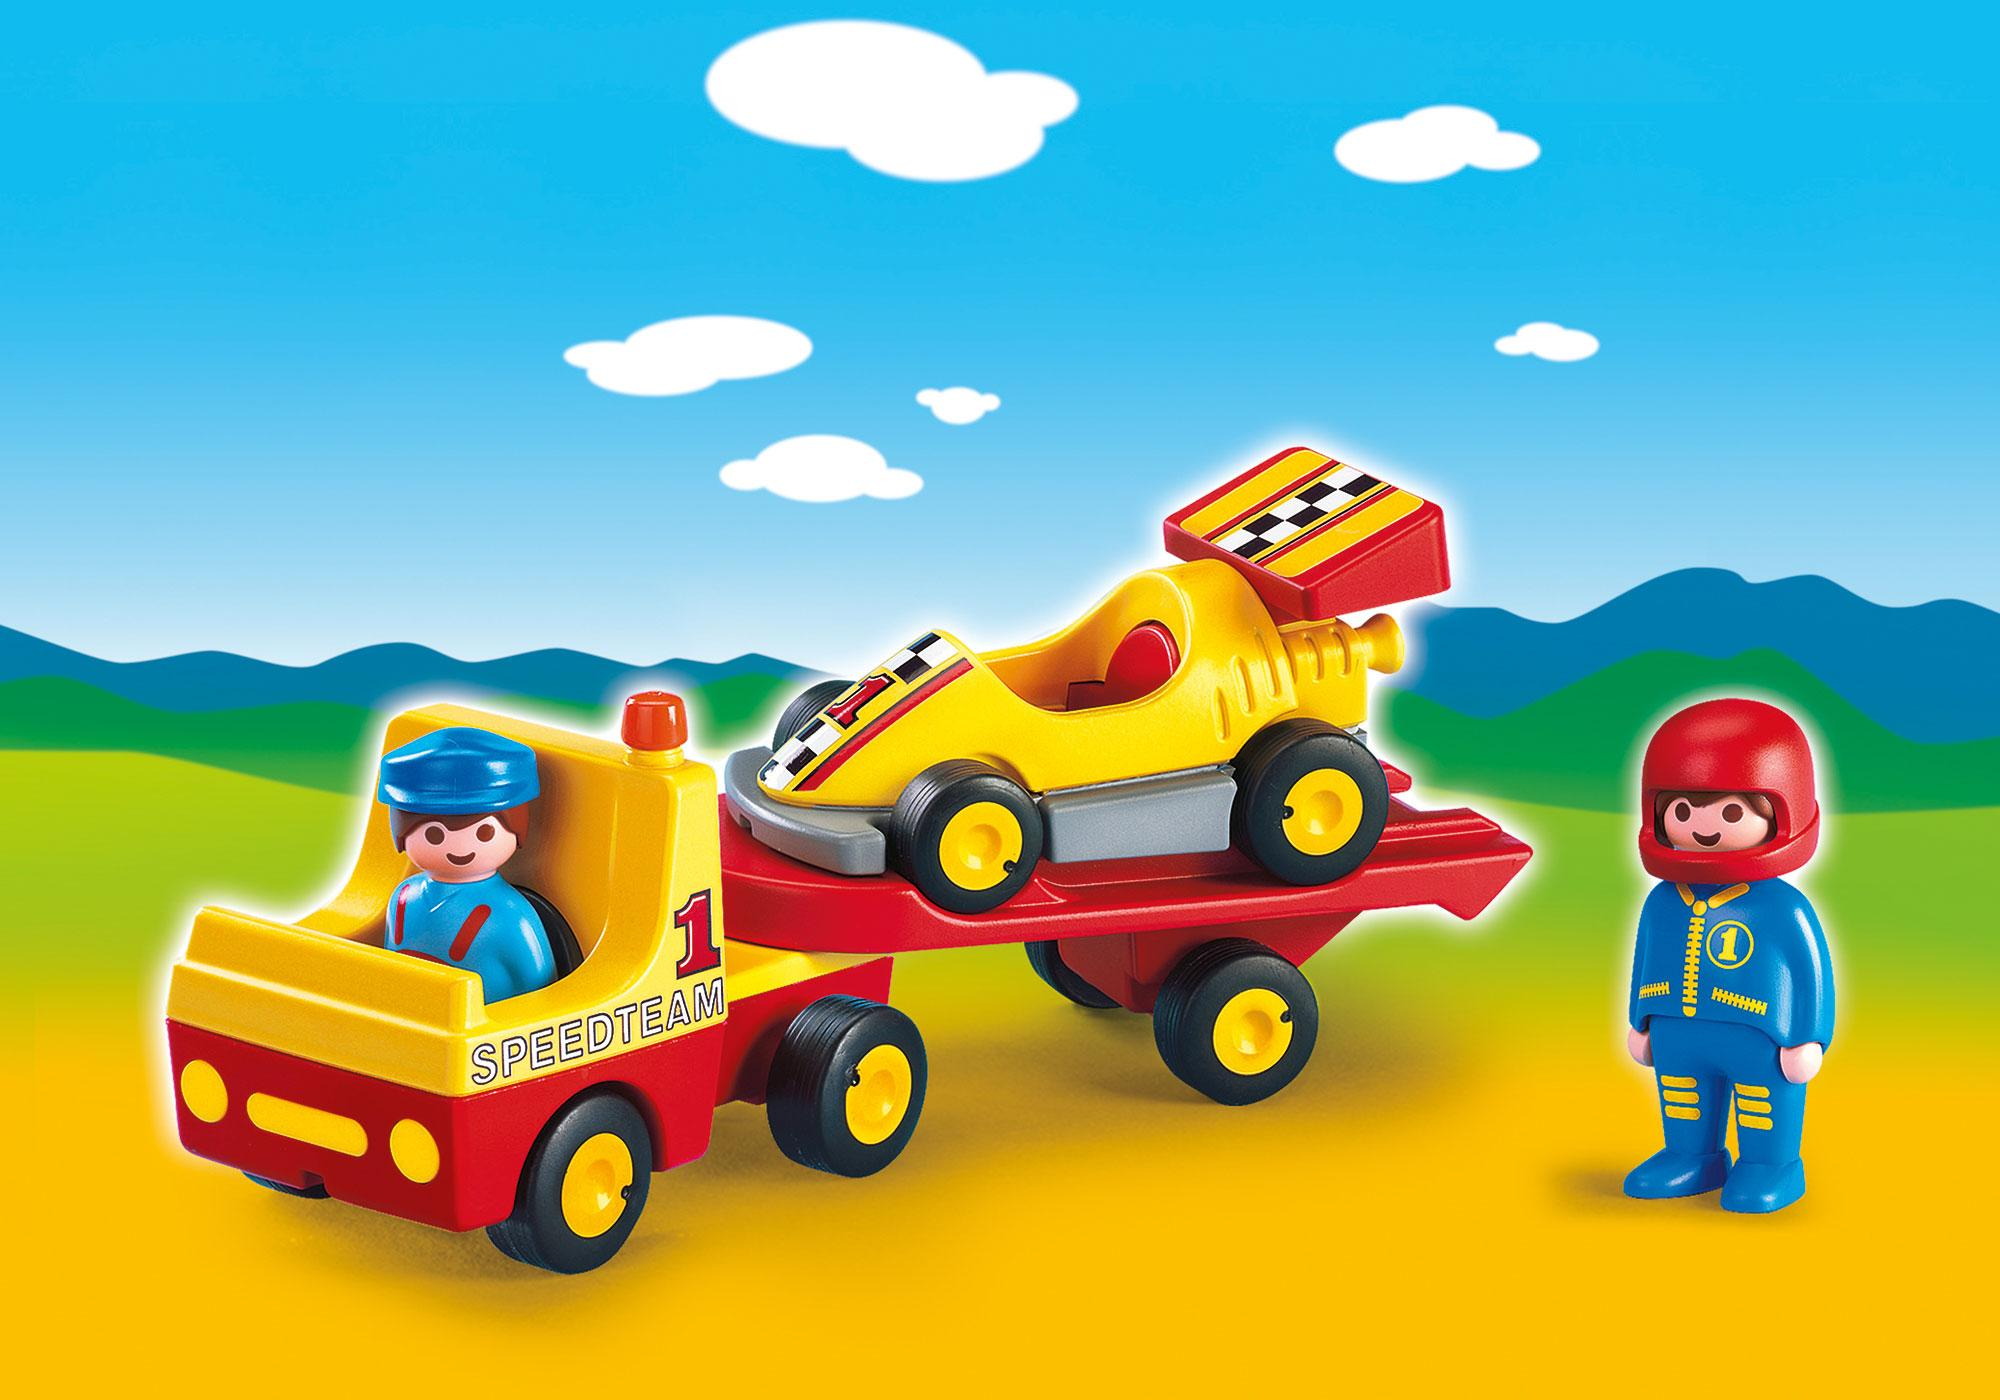 http://media.playmobil.com/i/playmobil/6761_product_detail/1.2.3 Tow Truck with Race Car